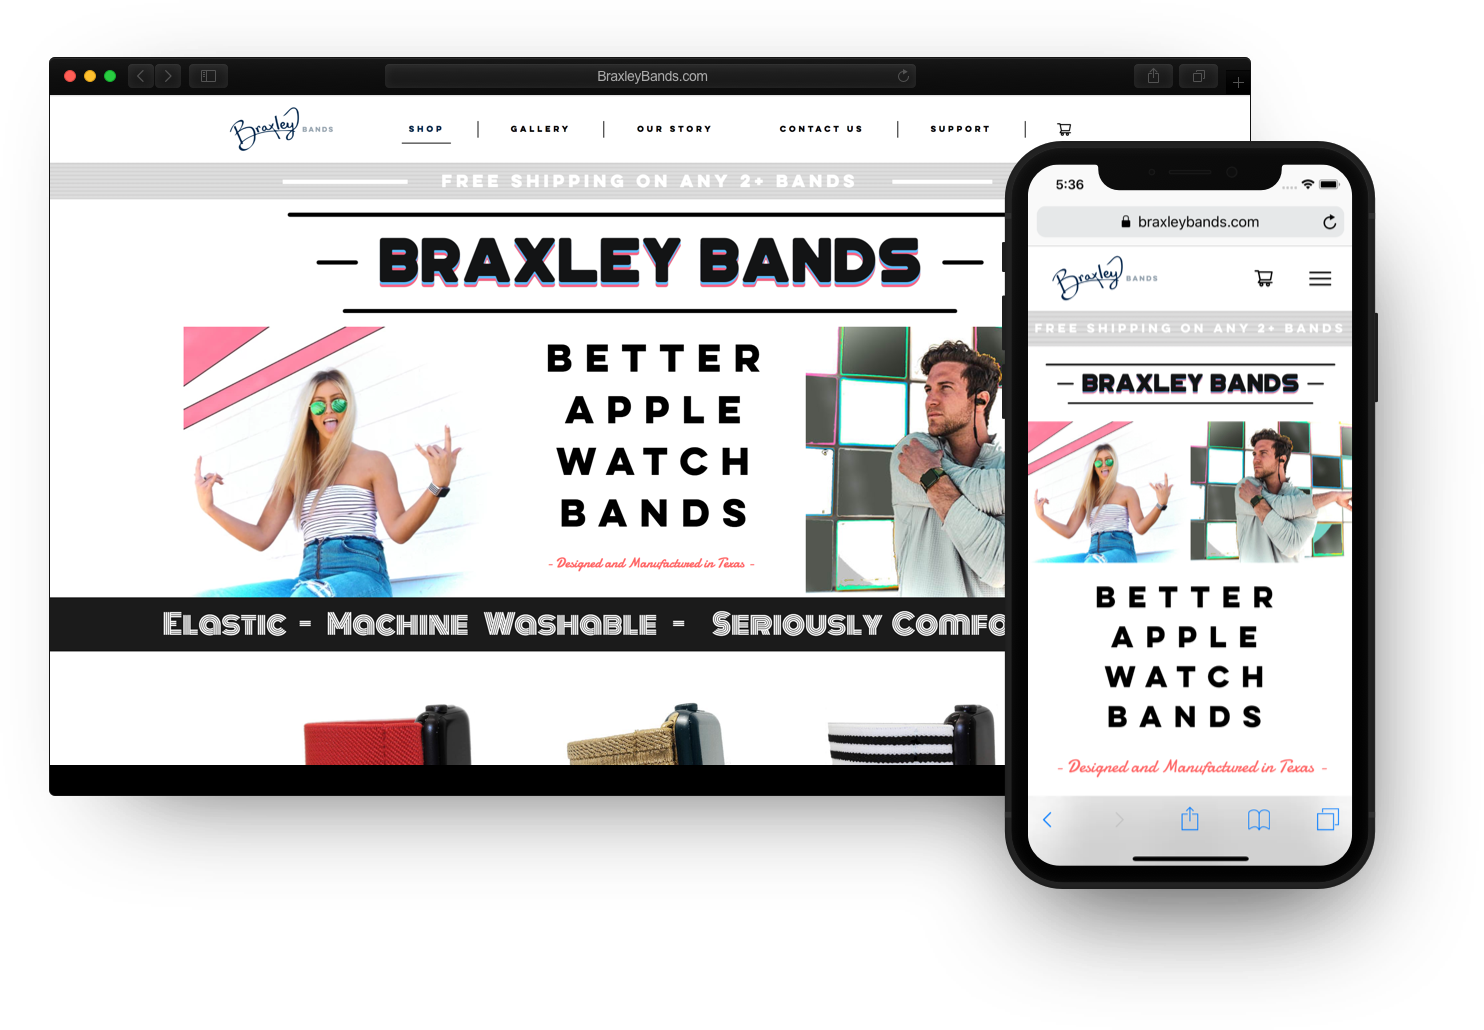 Braxley Bands project image